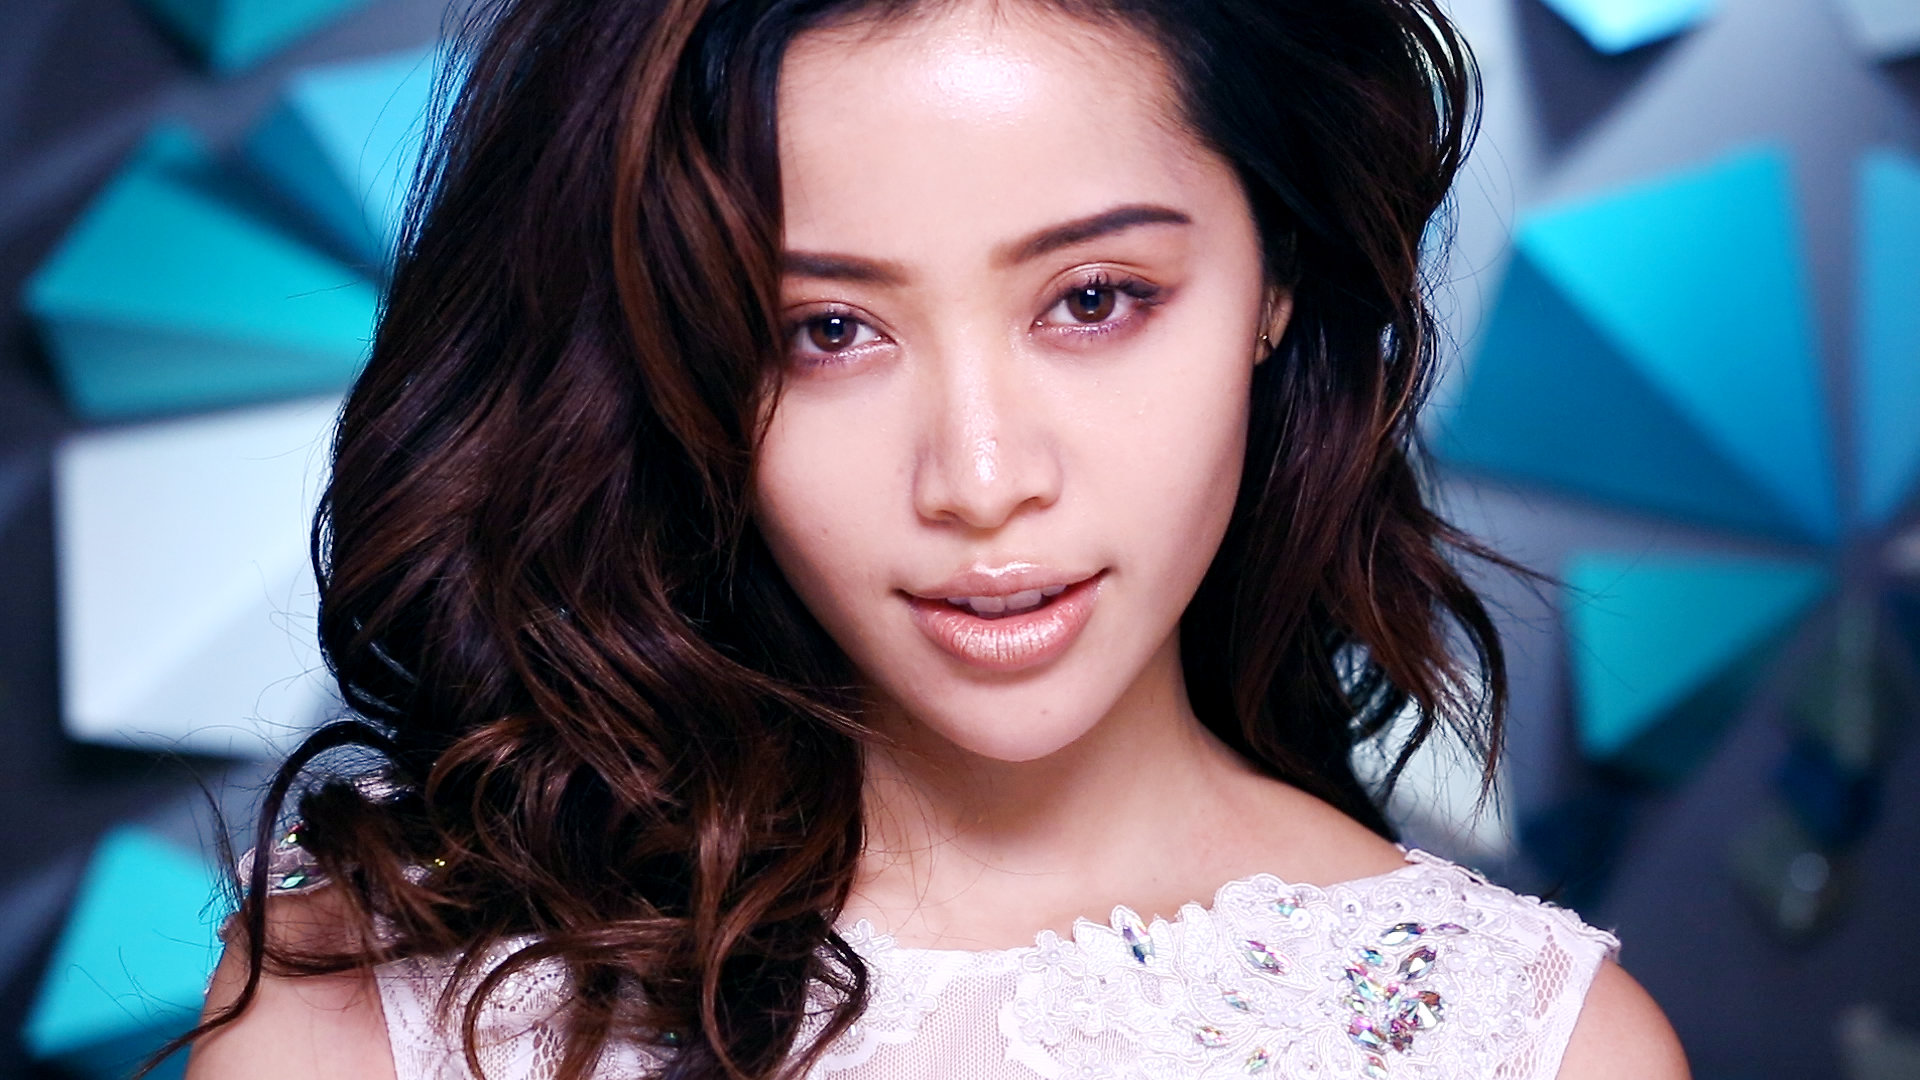 Michelle Phan Wallpapers Images Photos Pictures Backgrounds 1920x1080